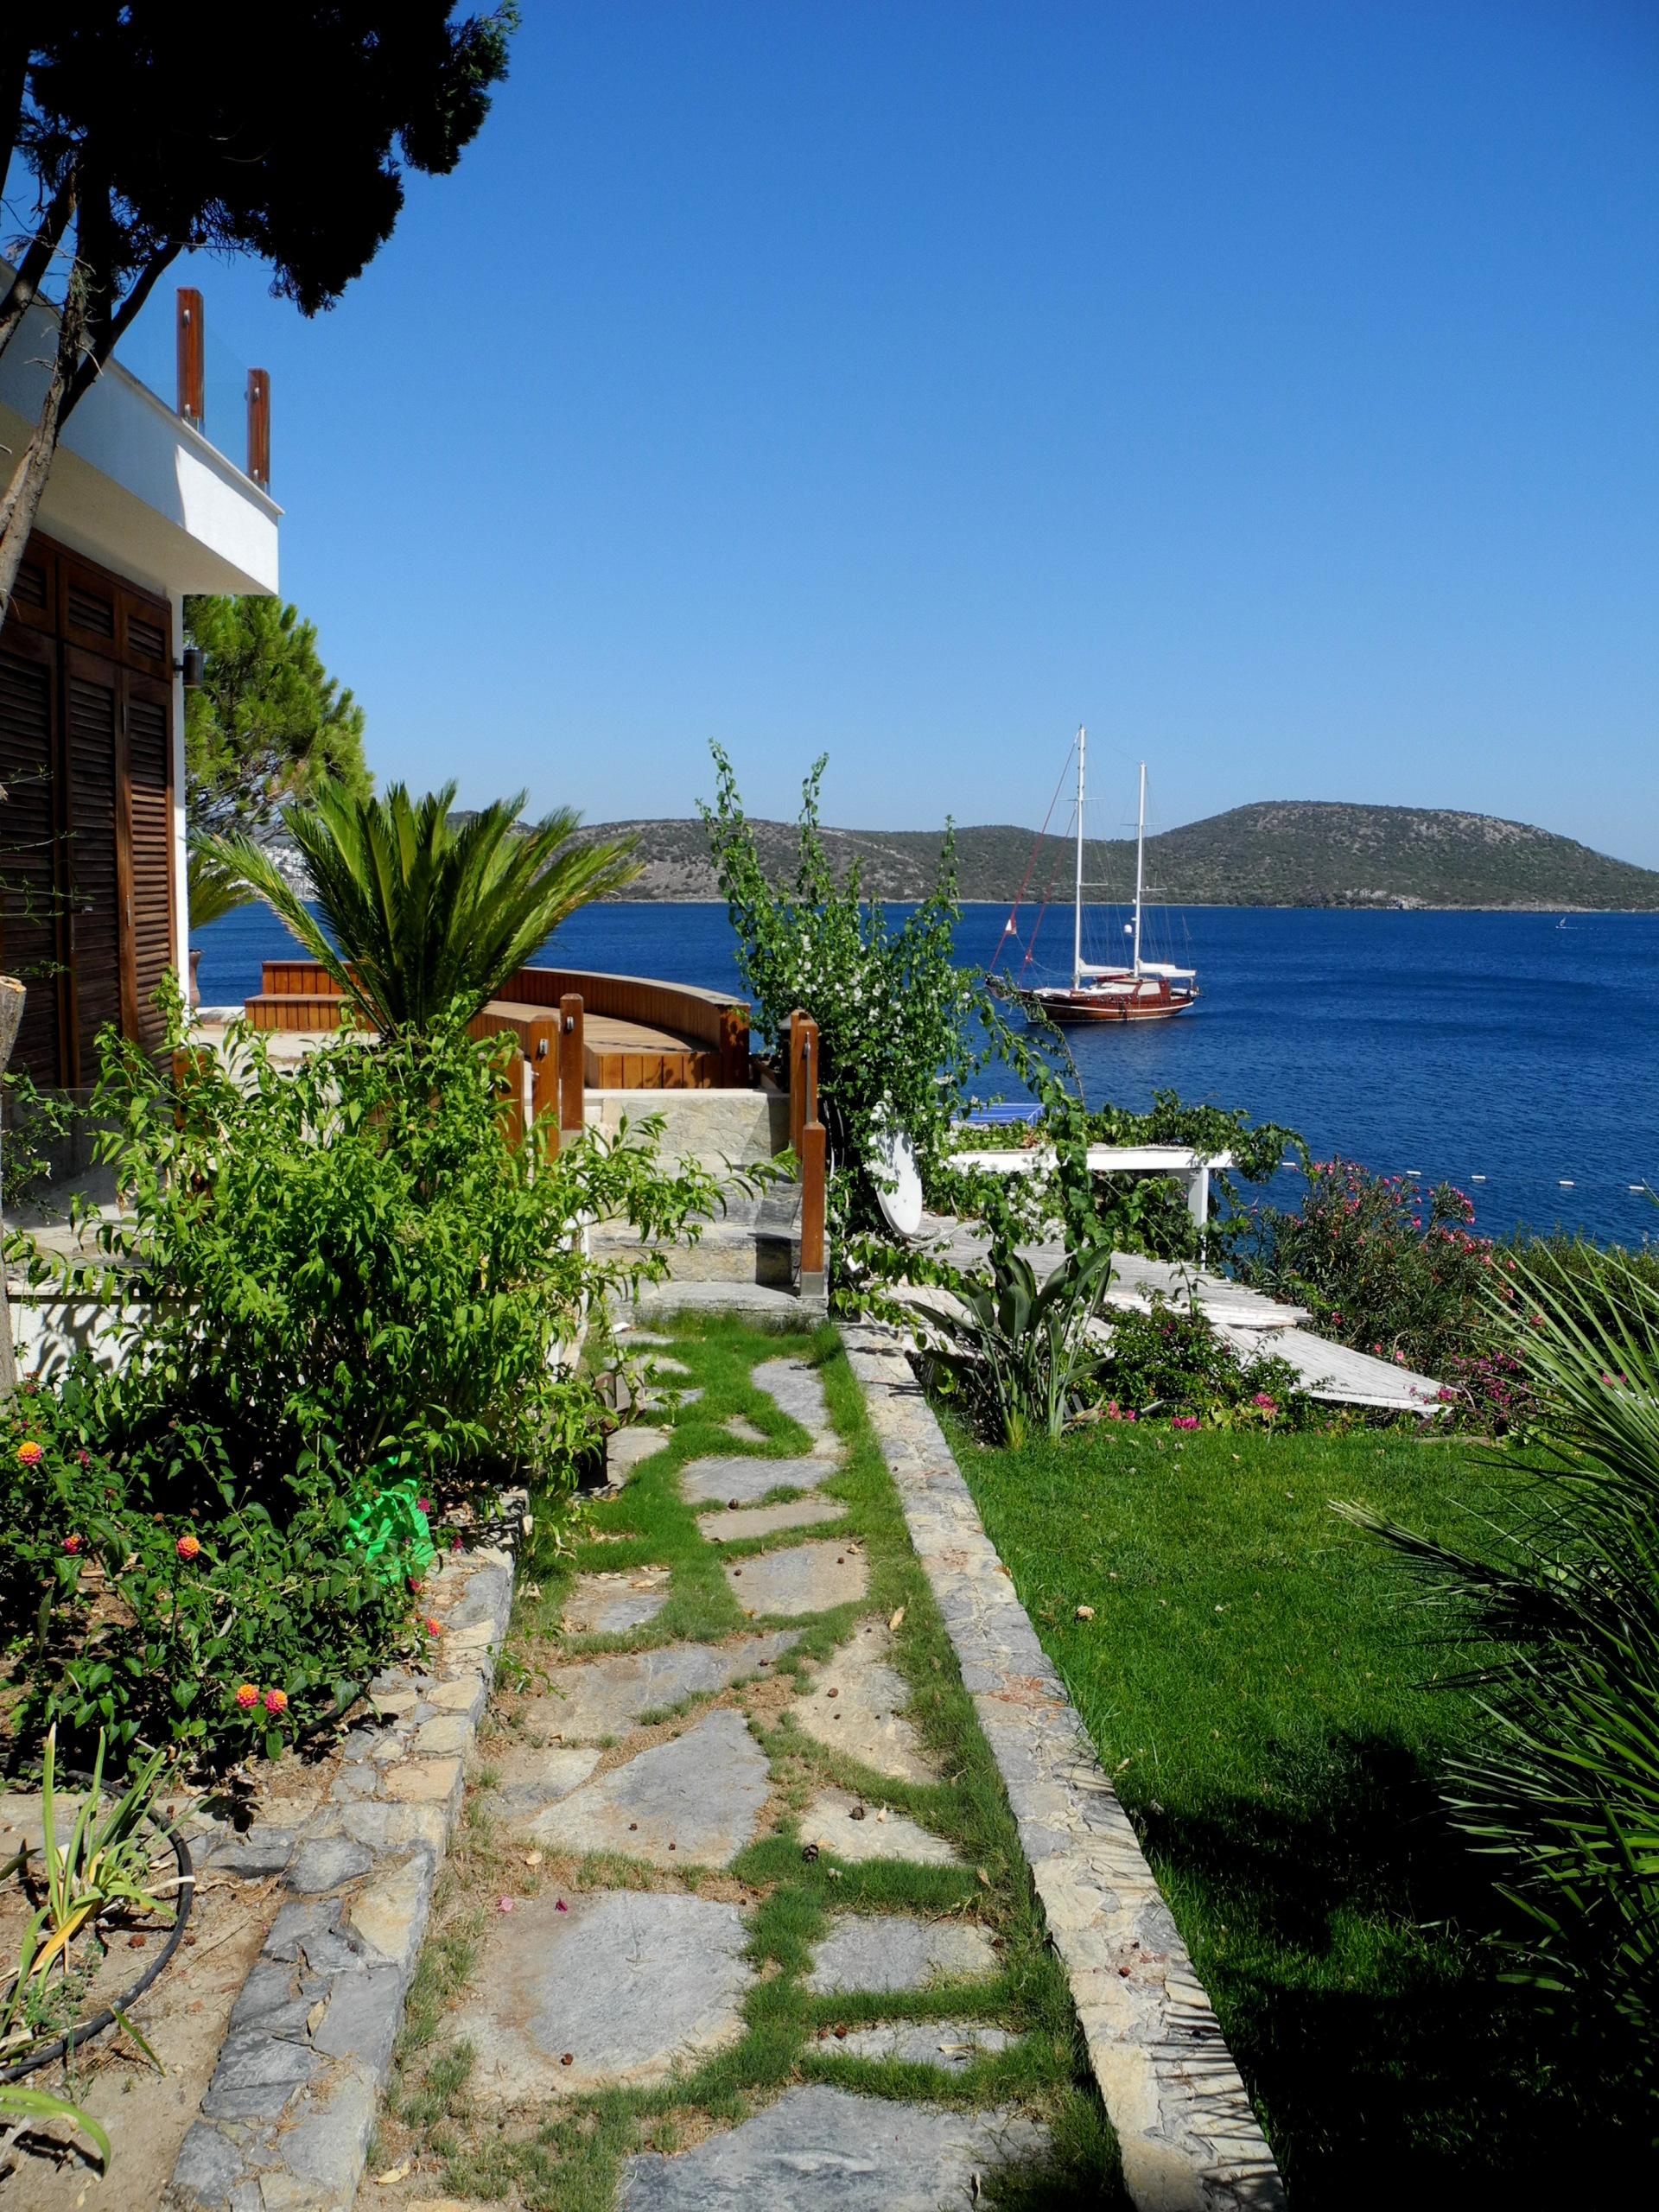 Summer Houses and bay views